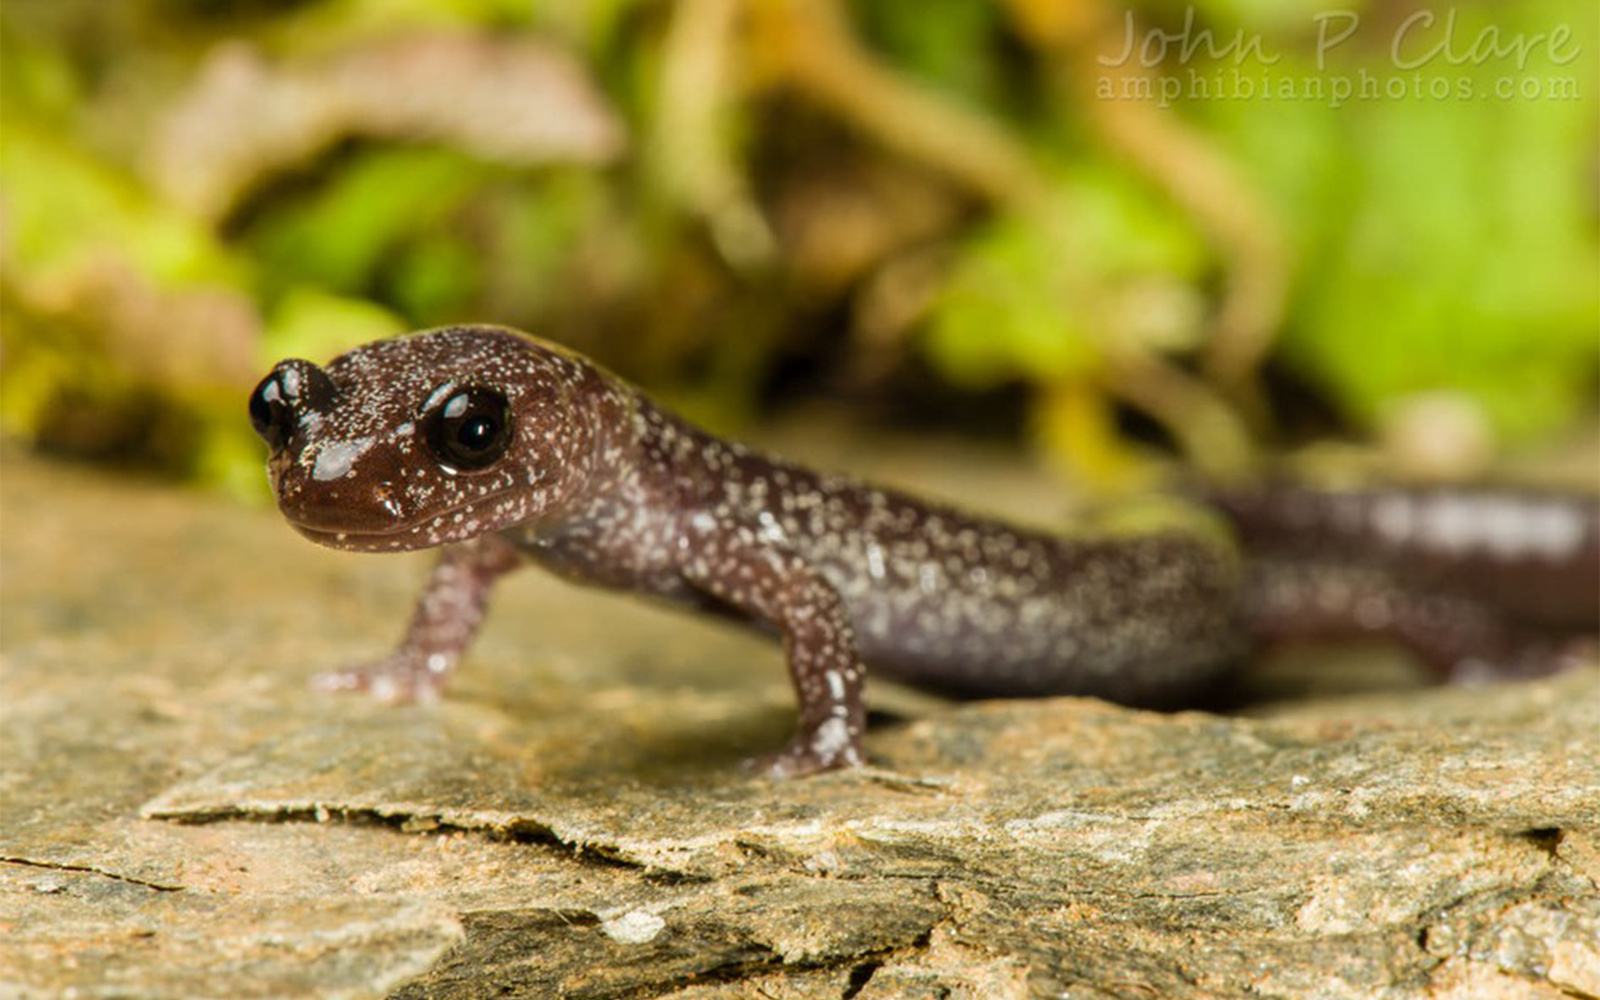 Lawsuit Launched to Protect Rare Siskiyou Mountains Salamander